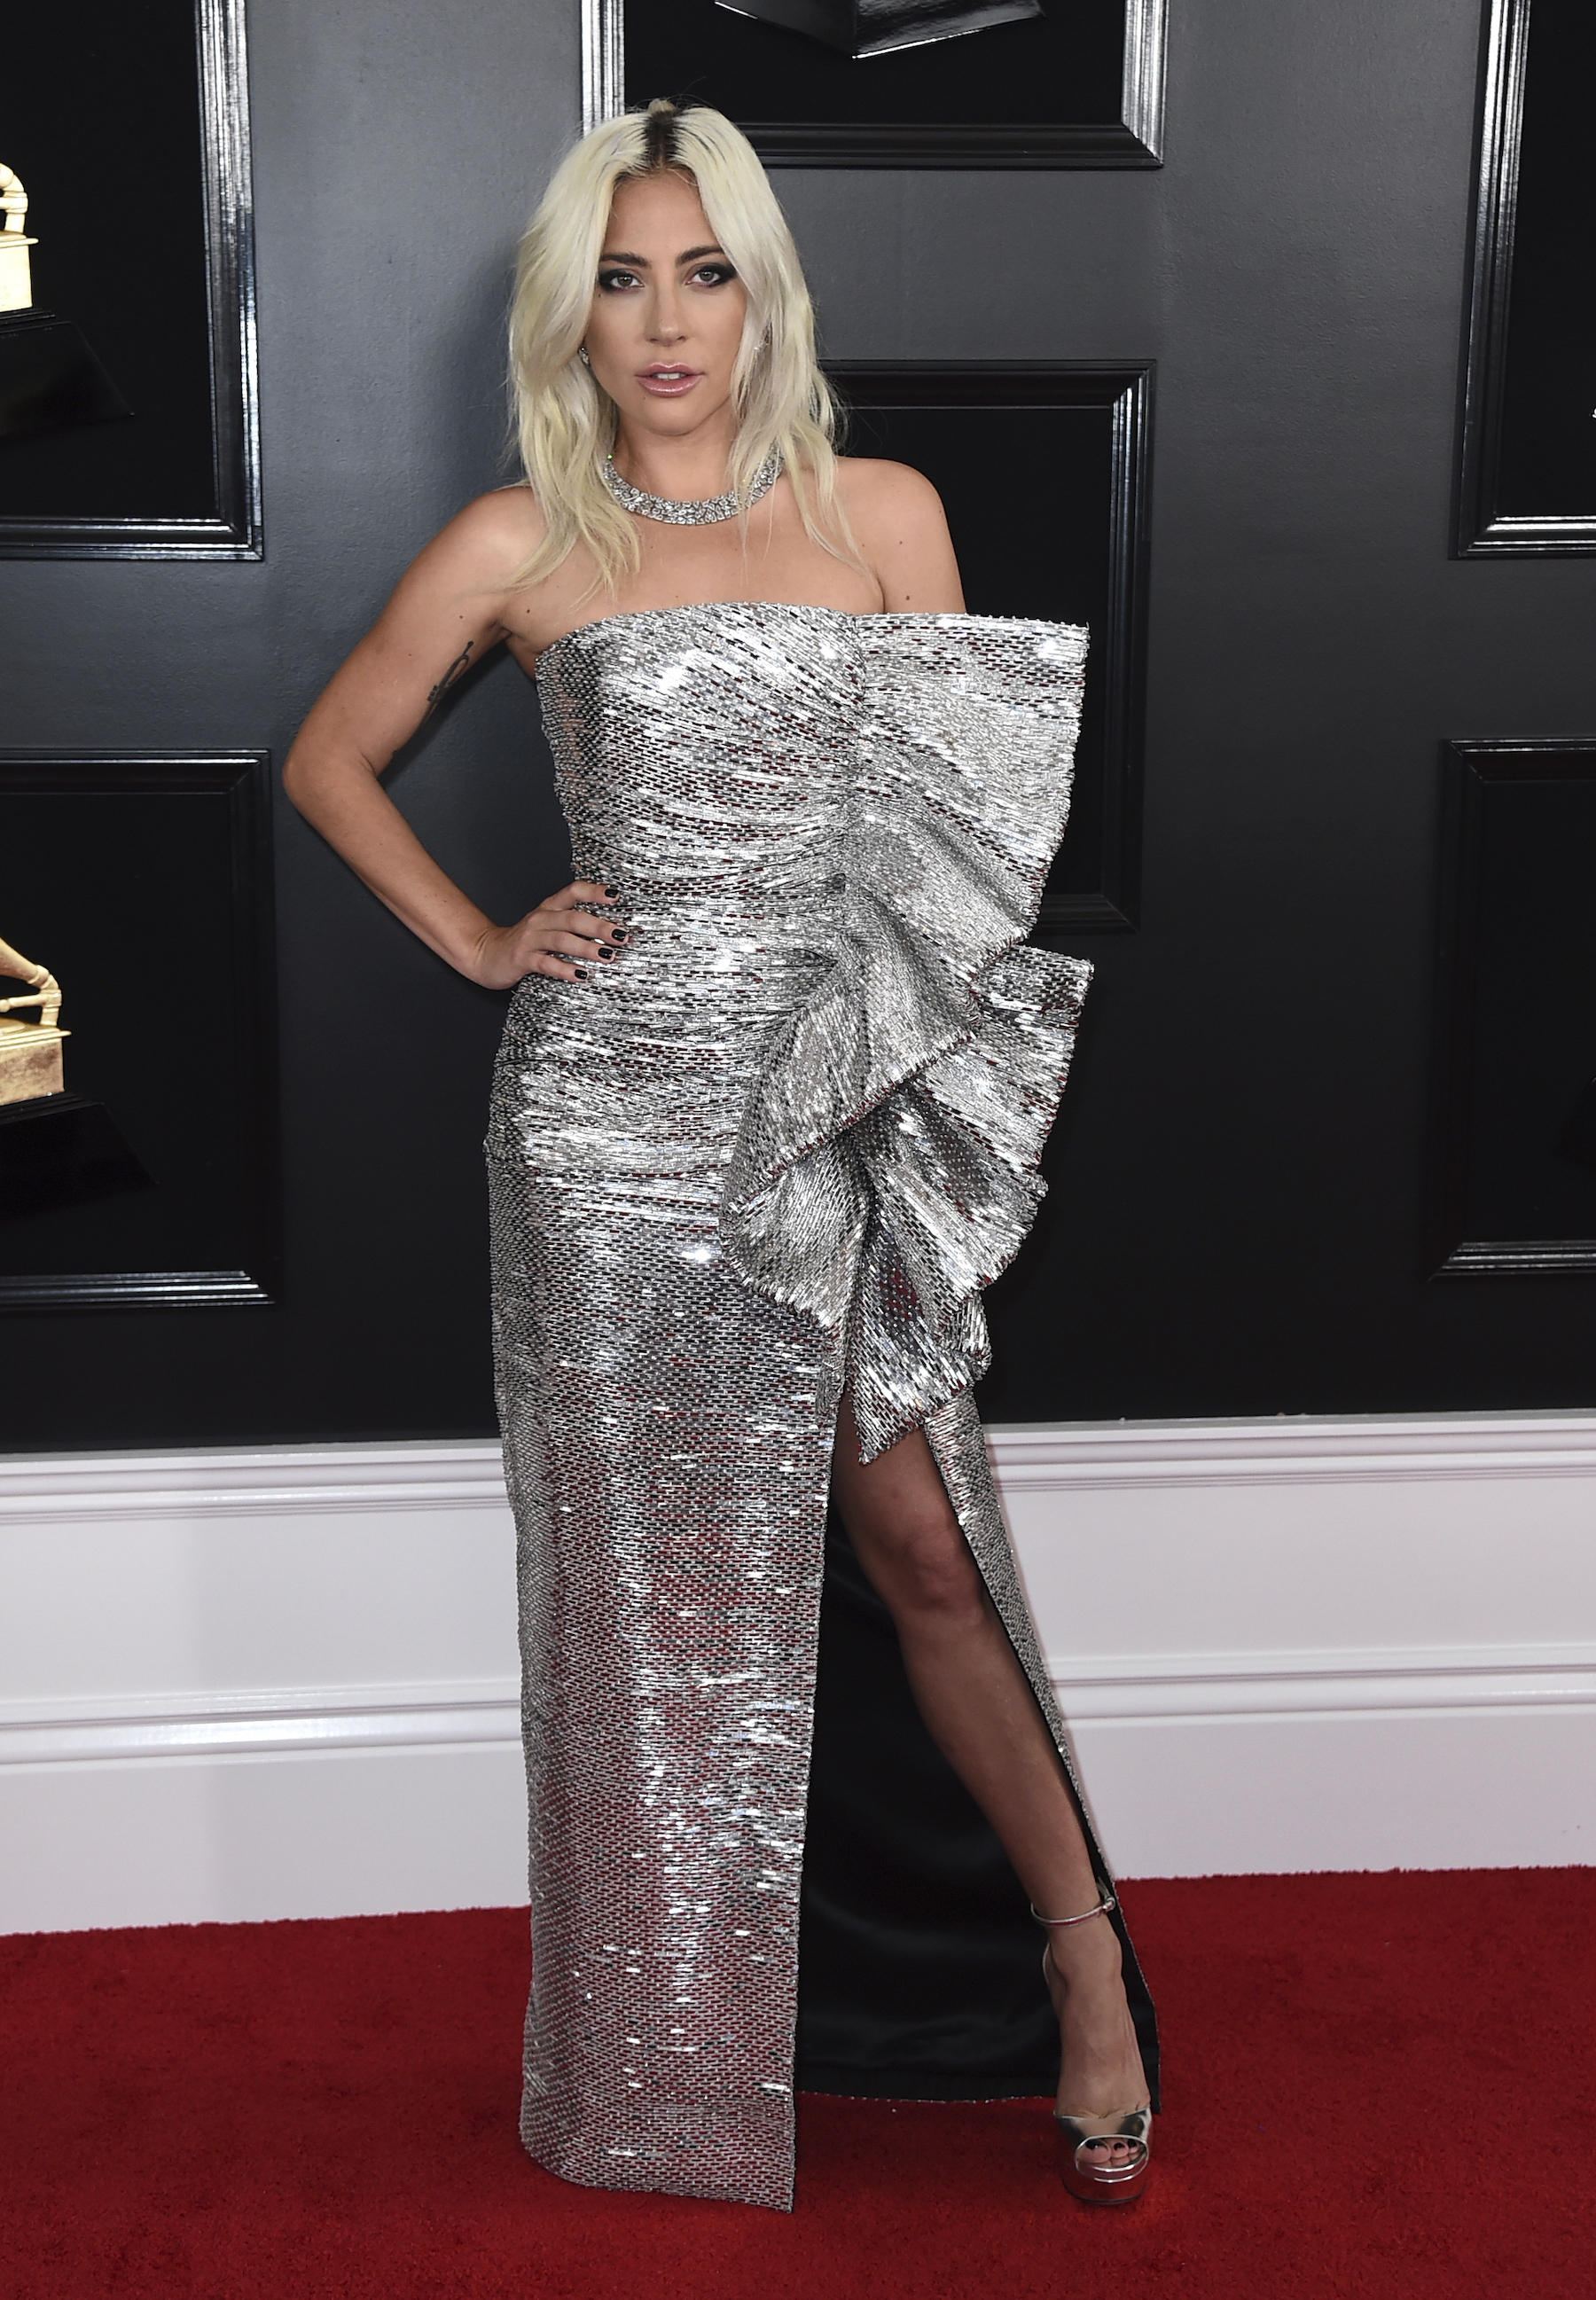 "<div class=""meta image-caption""><div class=""origin-logo origin-image ap""><span>AP</span></div><span class=""caption-text"">Lady Gaga arrives at the 61st annual Grammy Awards at the Staples Center on Sunday, Feb. 10, 2019, in Los Angeles. (Jordan Strauss/Invision/AP)</span></div>"